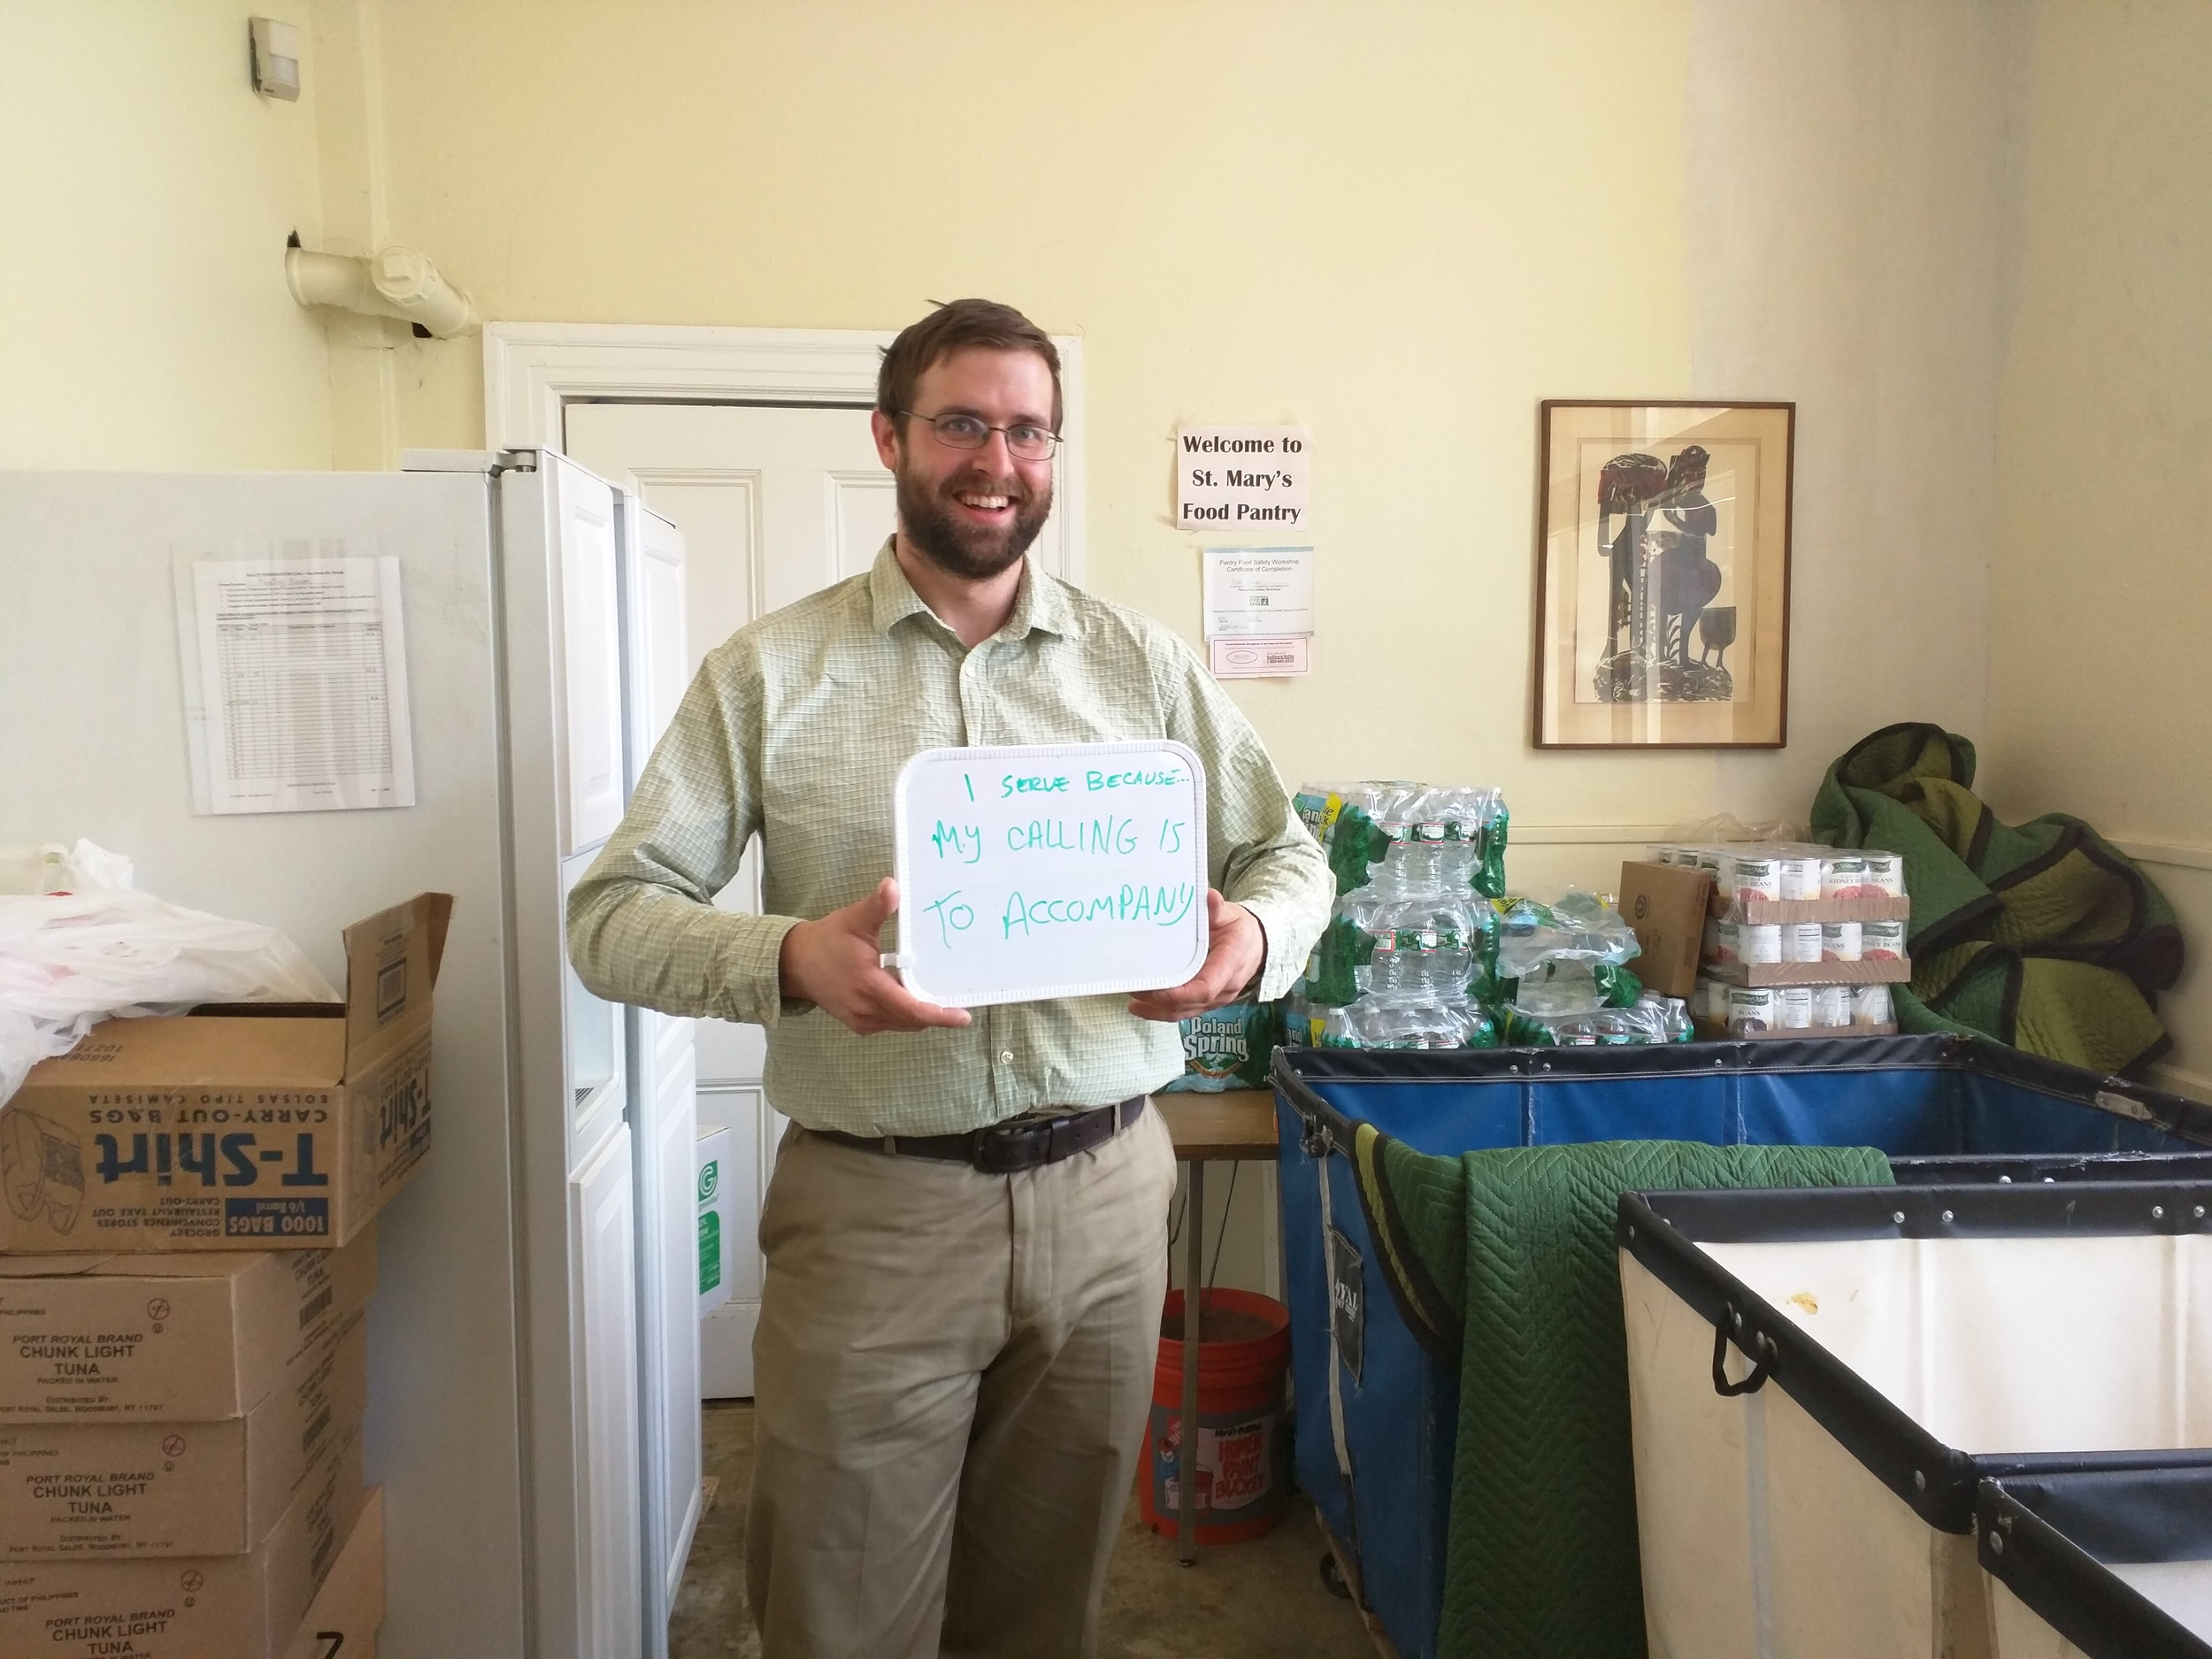 """""""I serve because my calling is to accompany"""" - William Harron, Emmaus Fellow at St. Mary's Episcopal Church in Dorchester & Allston intentional community"""